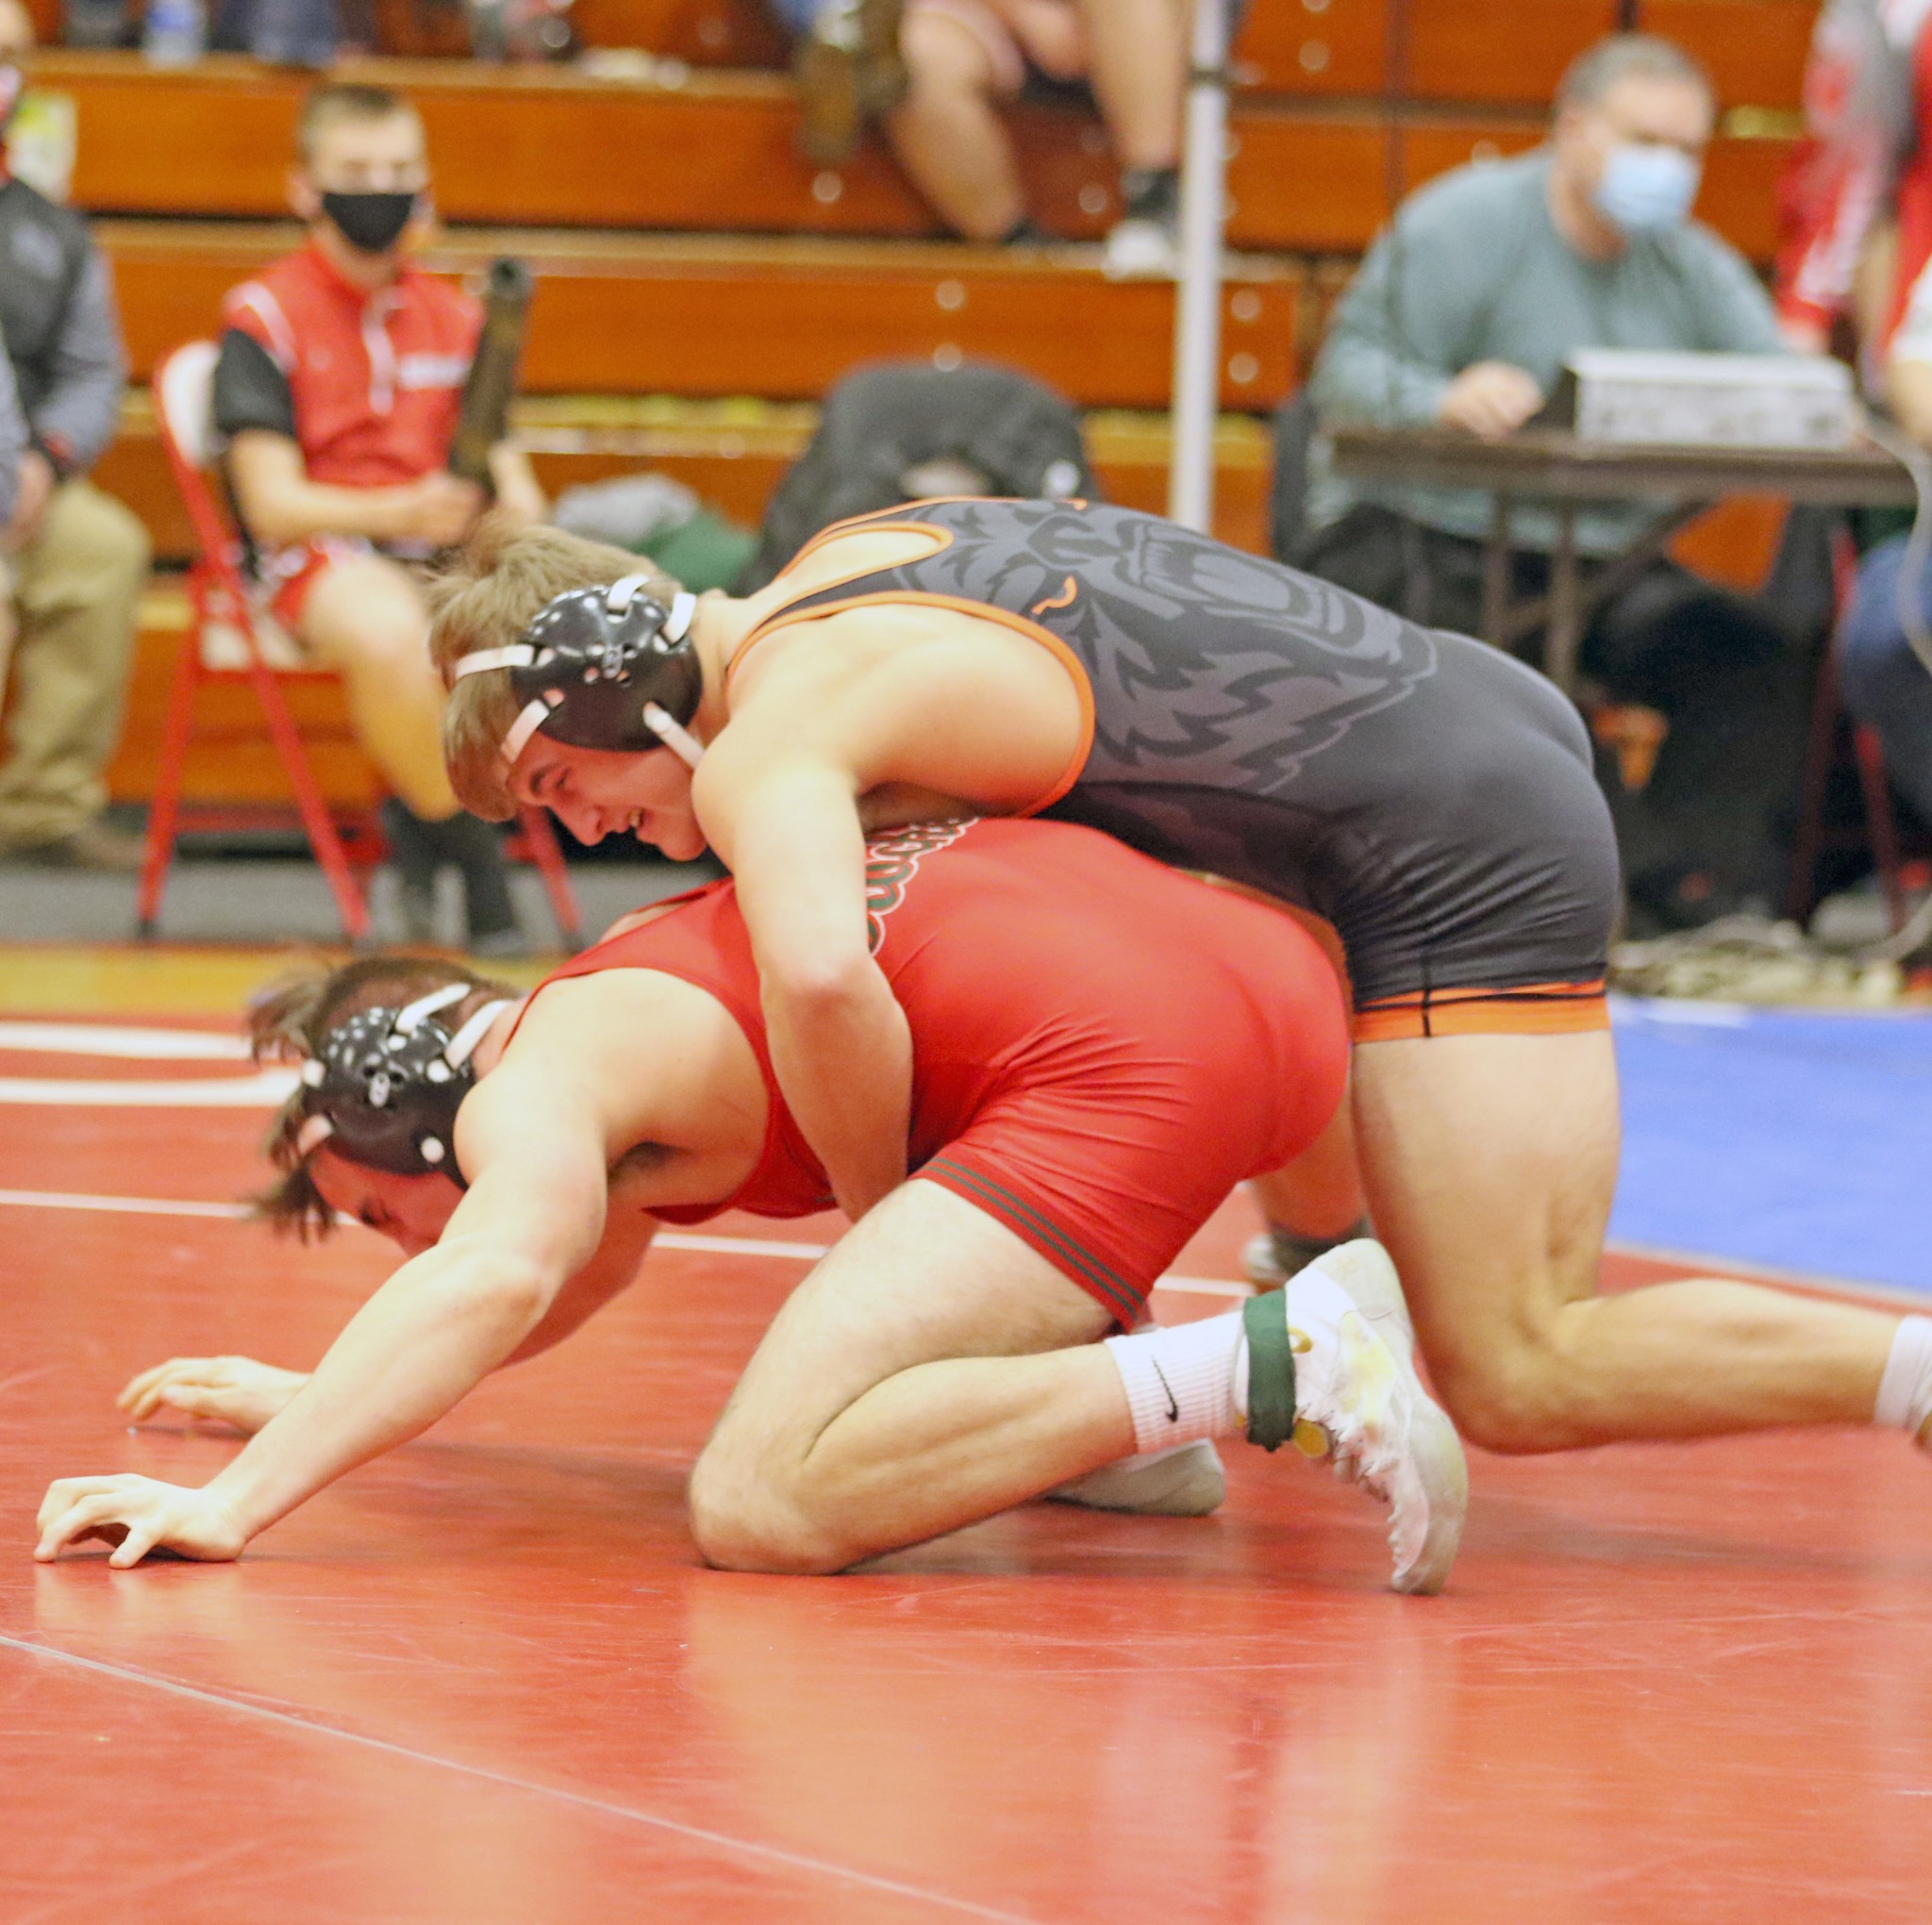 Gibsonburg sophomore wrestler Connor Smith looking to get a takedown. Smith, a Sandusky Bay Conference Bay/River Division champion, is undefeated at 32-0 (Photo by Doug Hise)